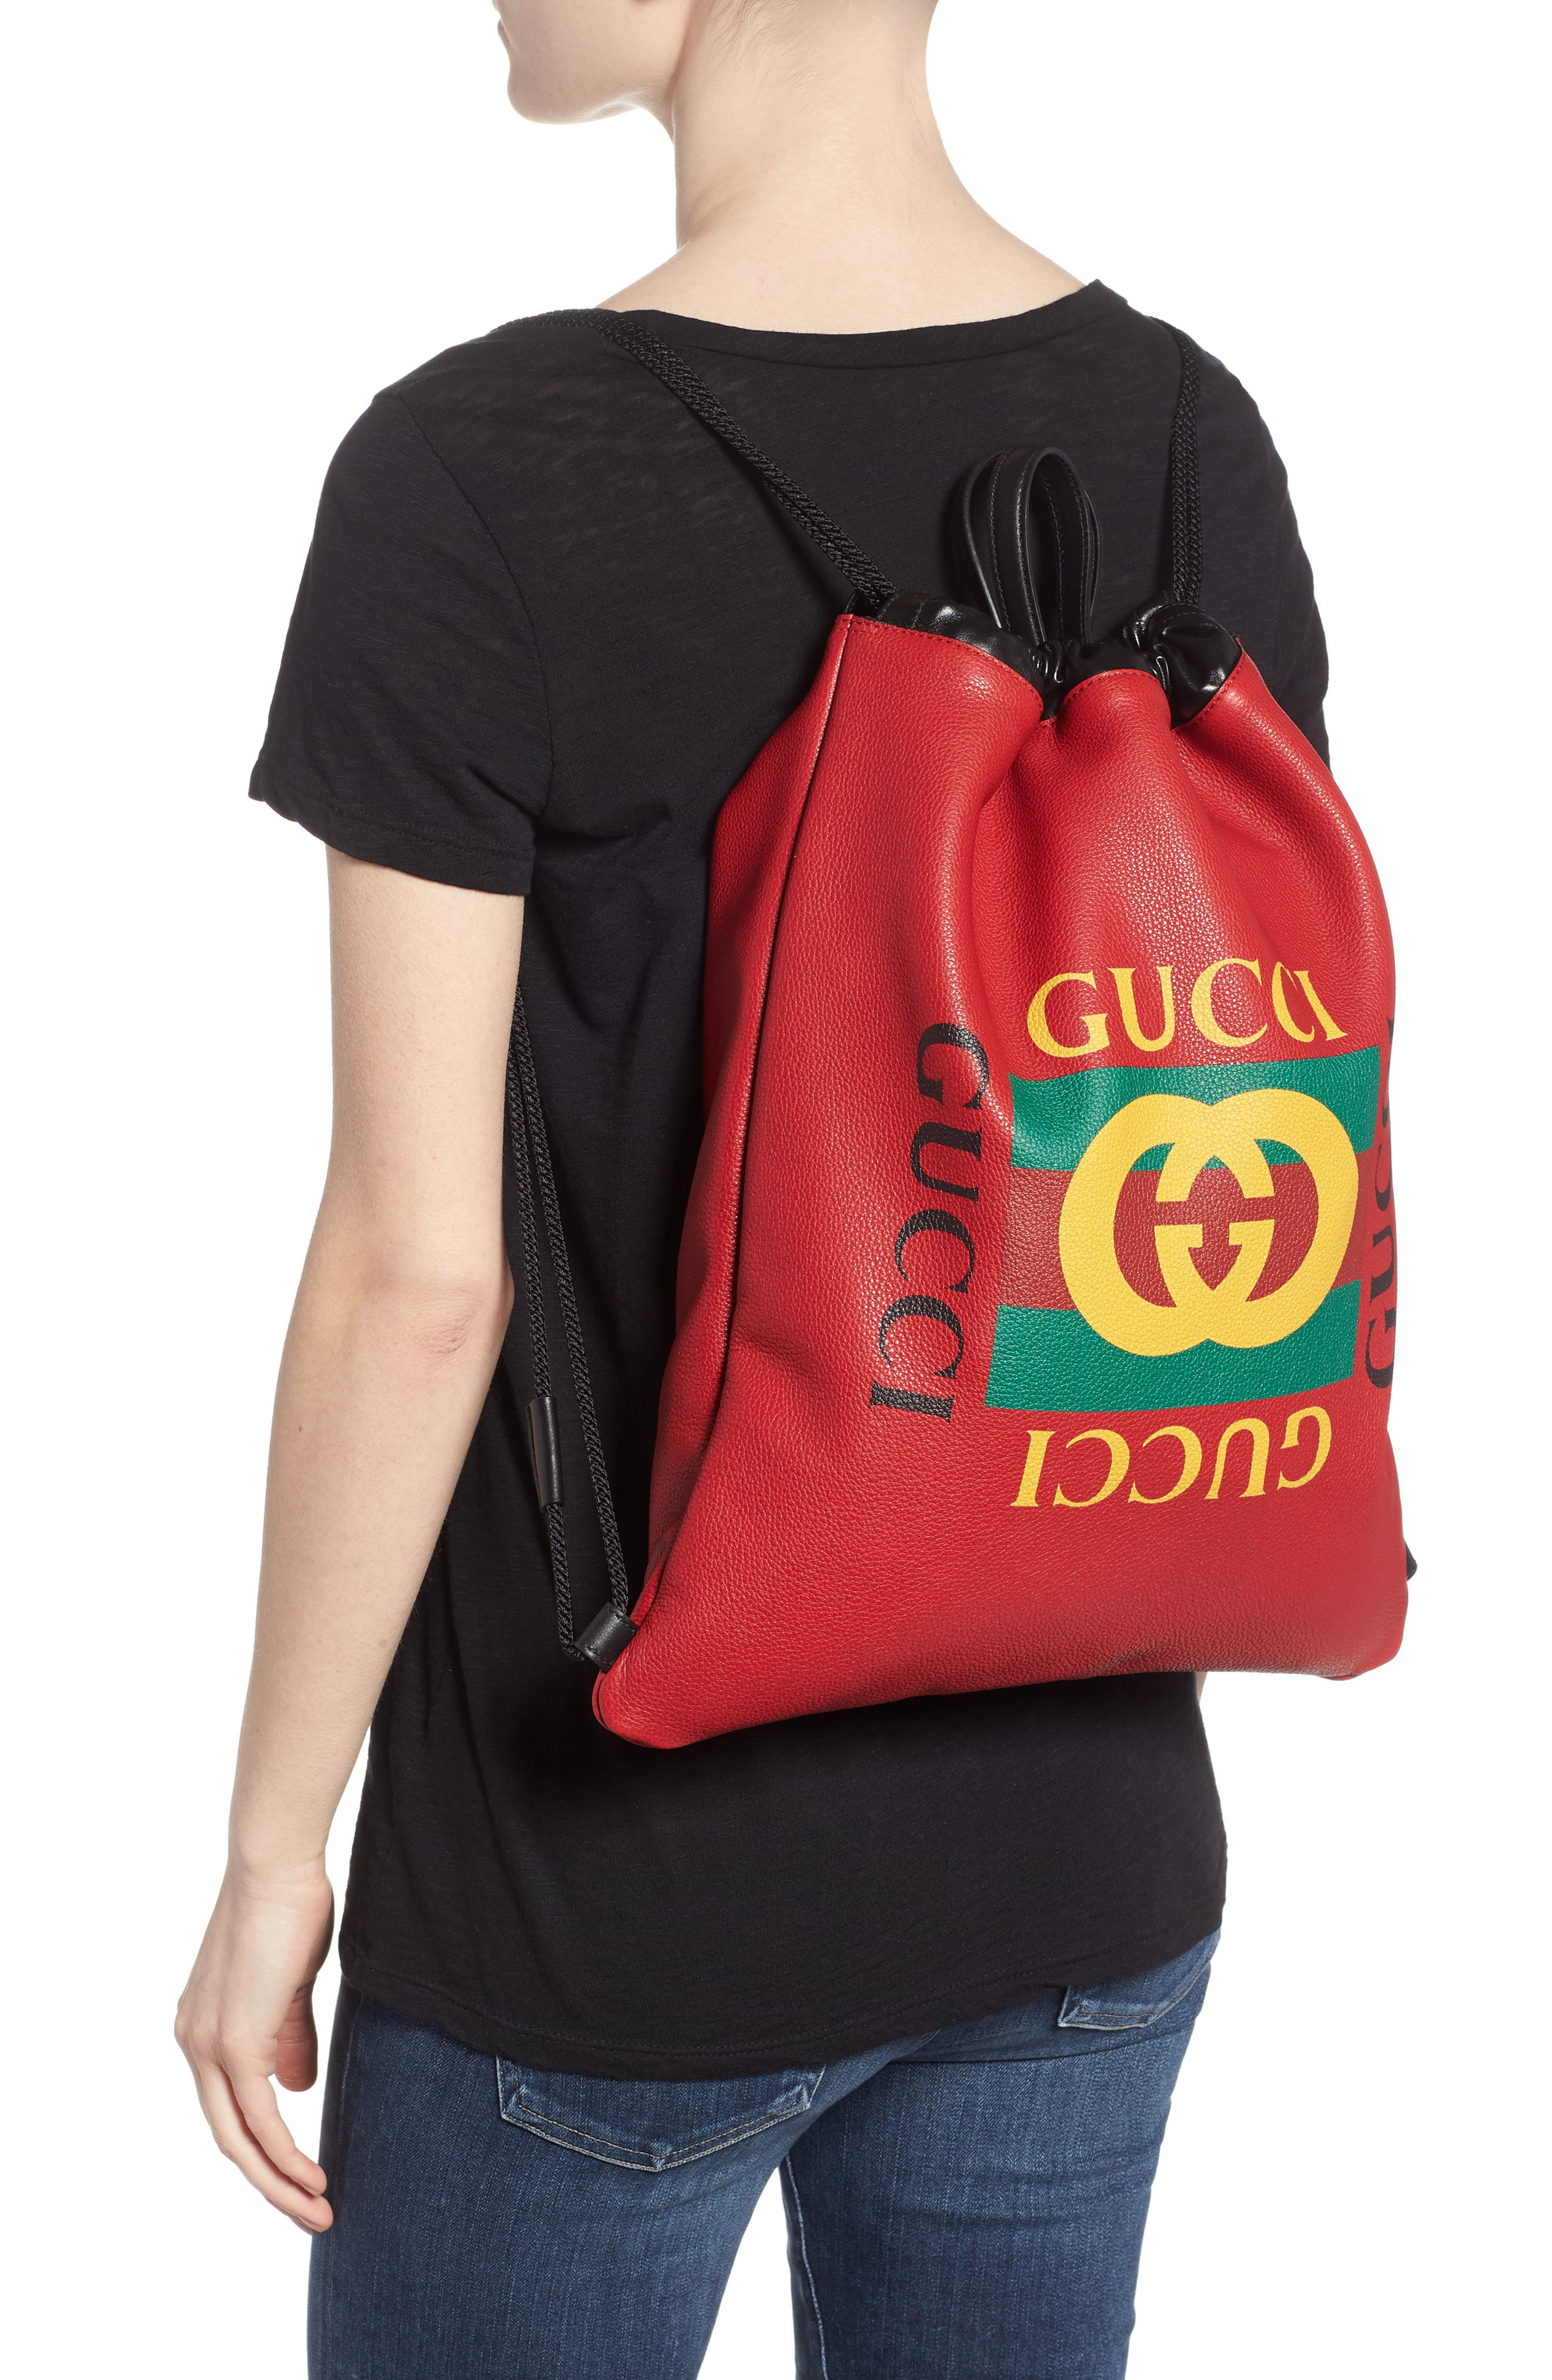 GUCCI,                             Logo Drawstring Leather Backpack,                             Alternate thumbnail 2, color,                             HIBISCUS RED/ NERO/ VERT